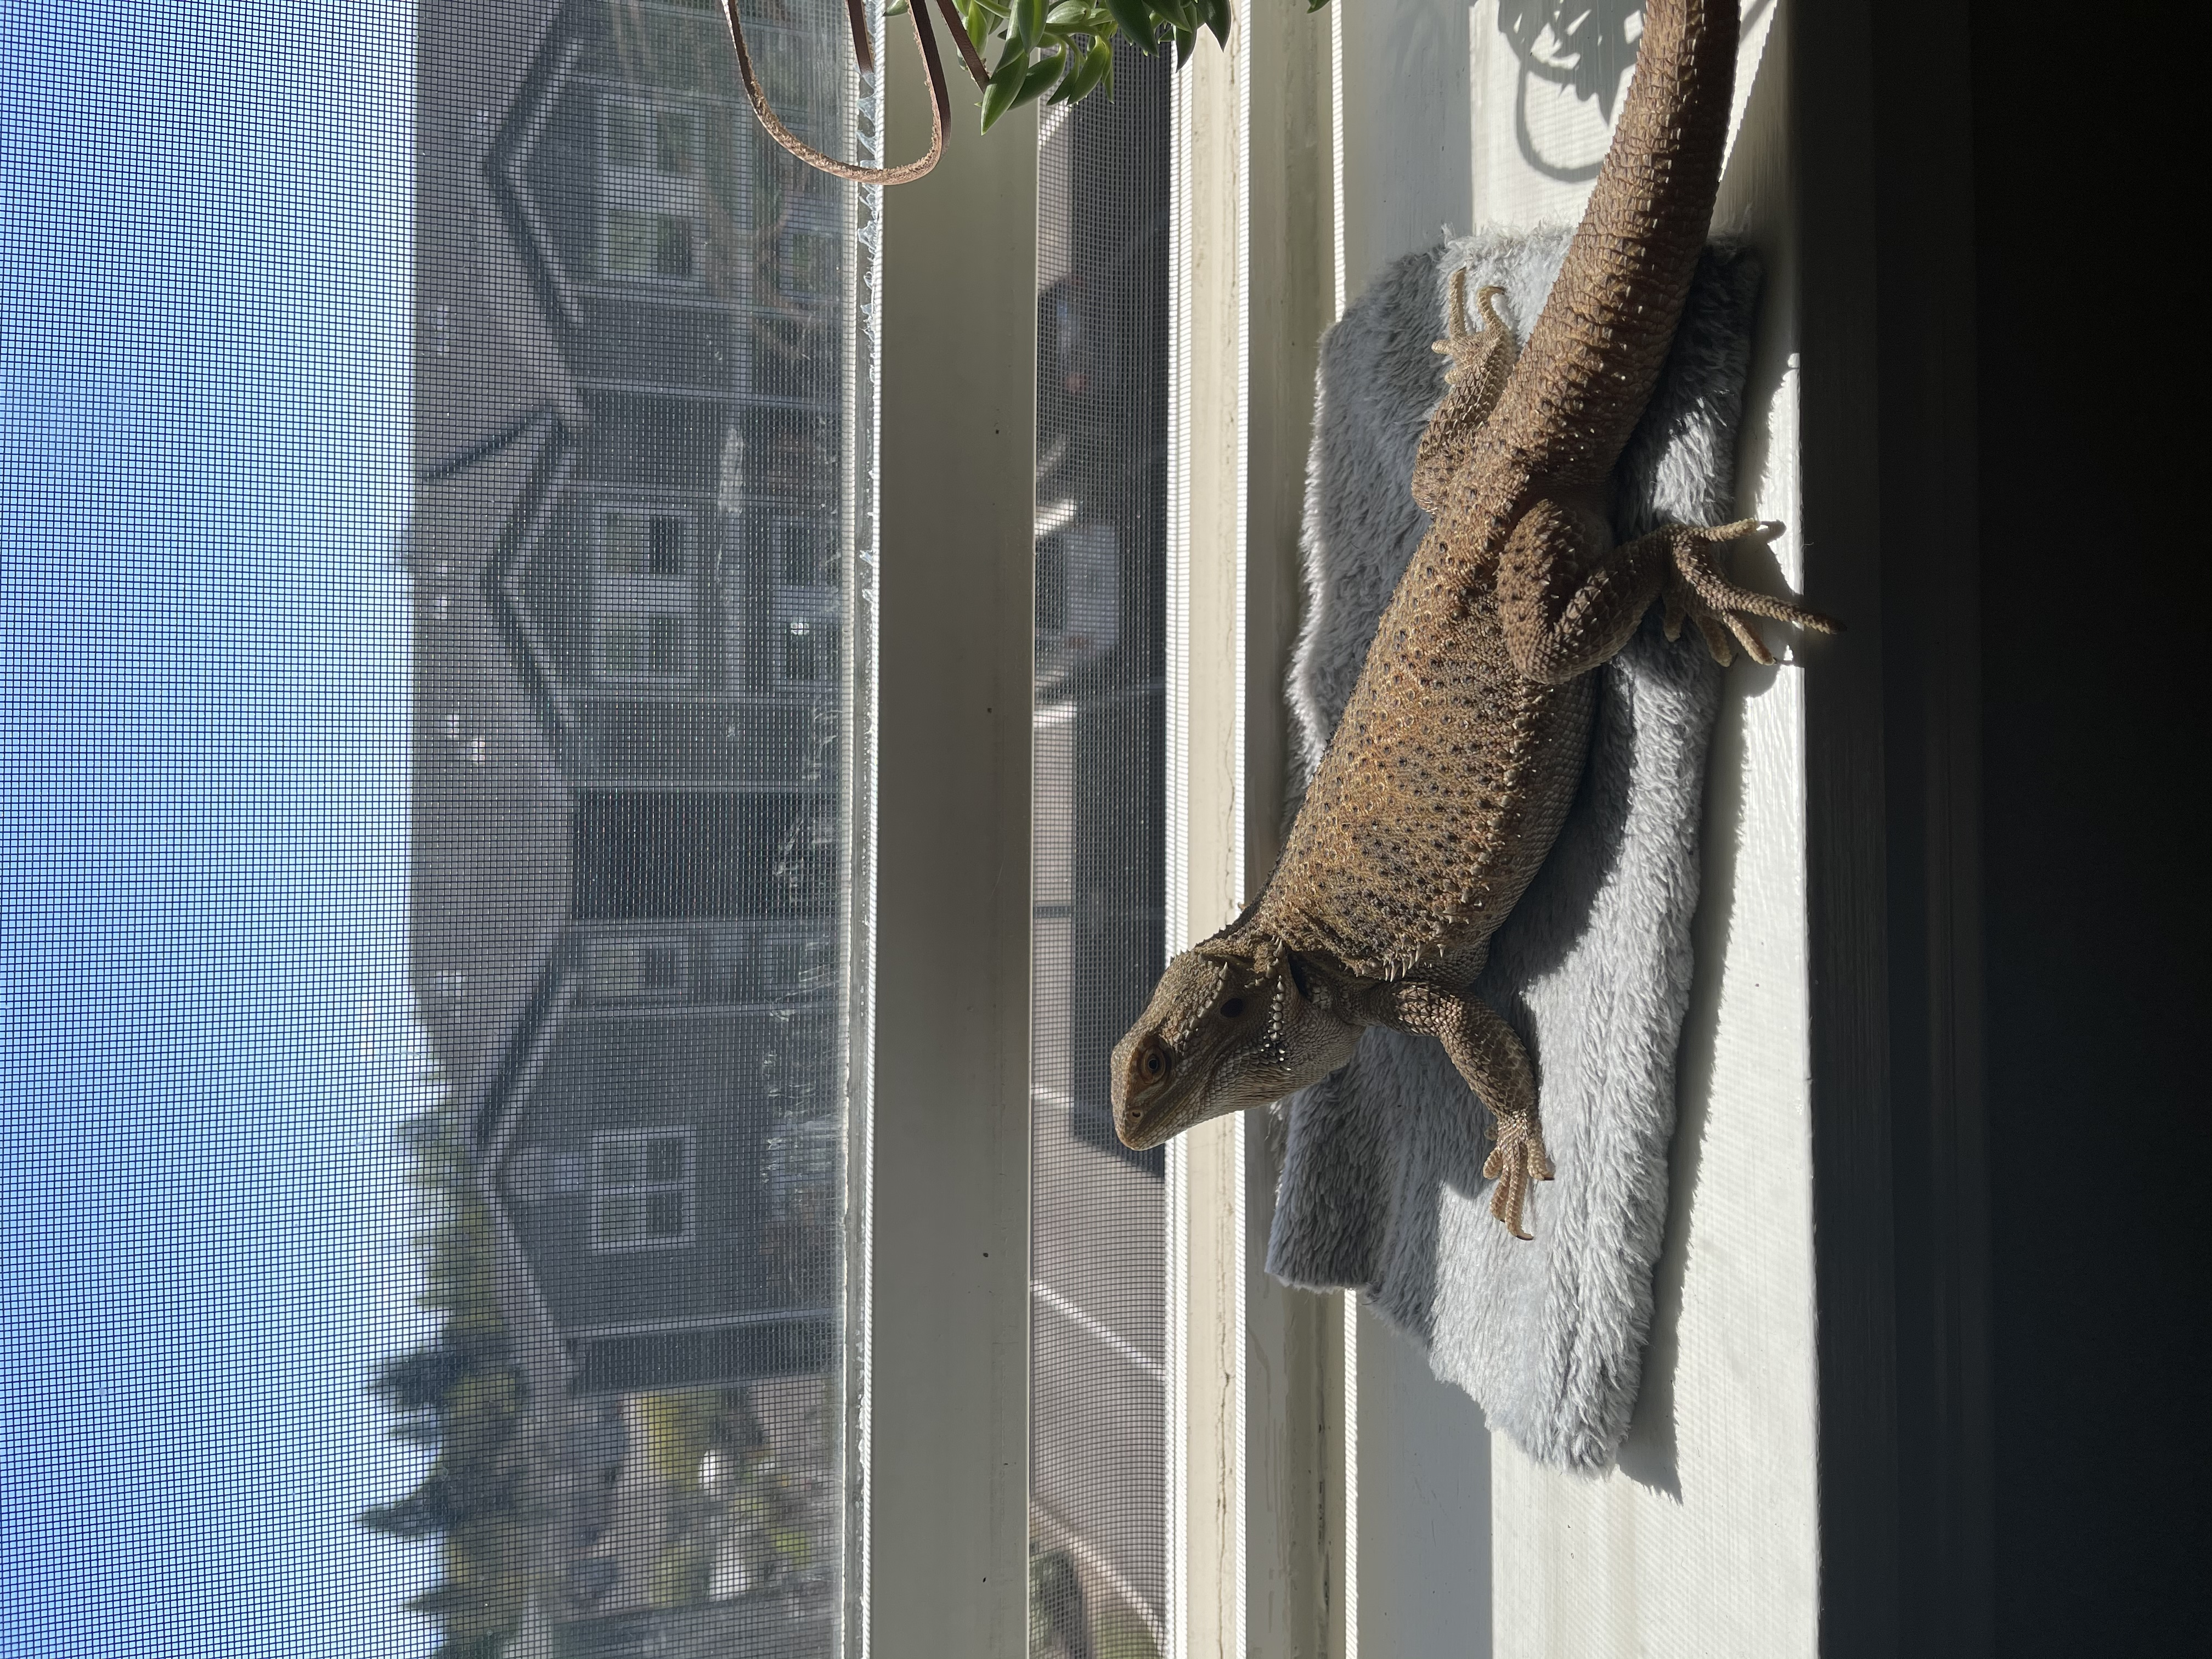 adoptable Reptile in Salem,OR named Tina